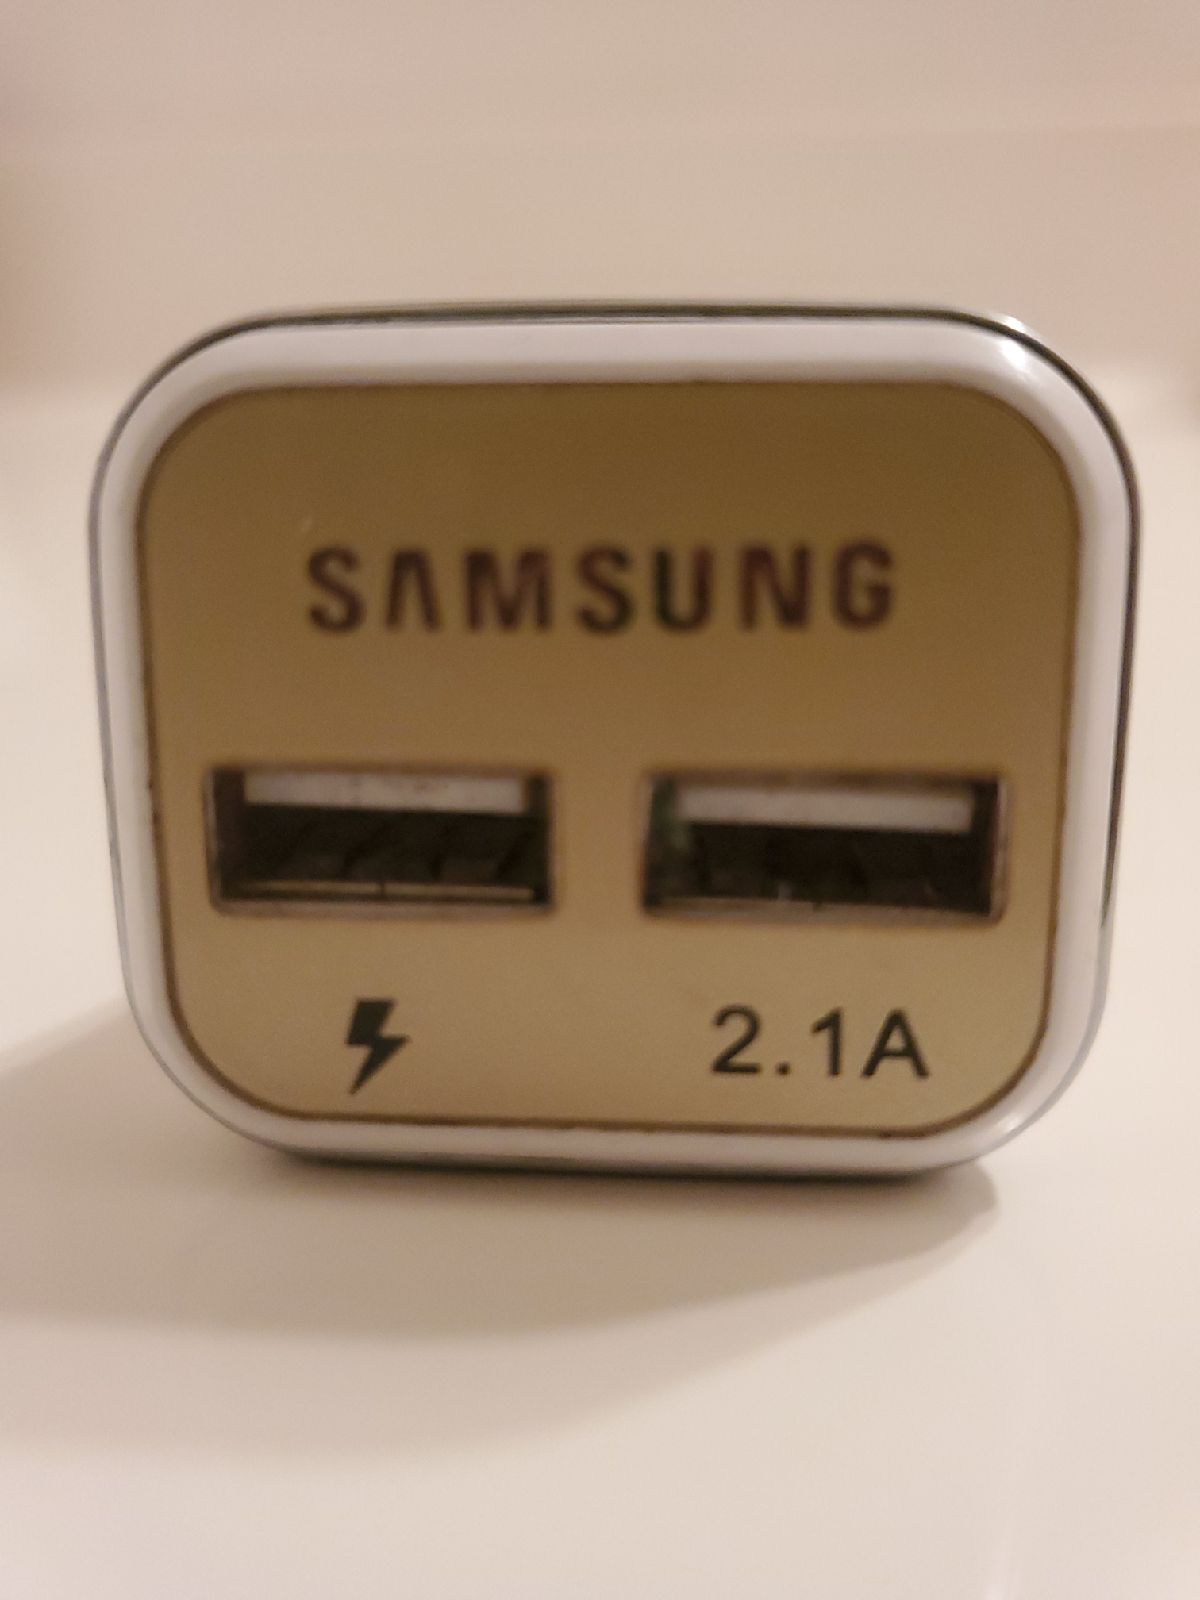 Samsung Fast Charger (Cigarette lighter